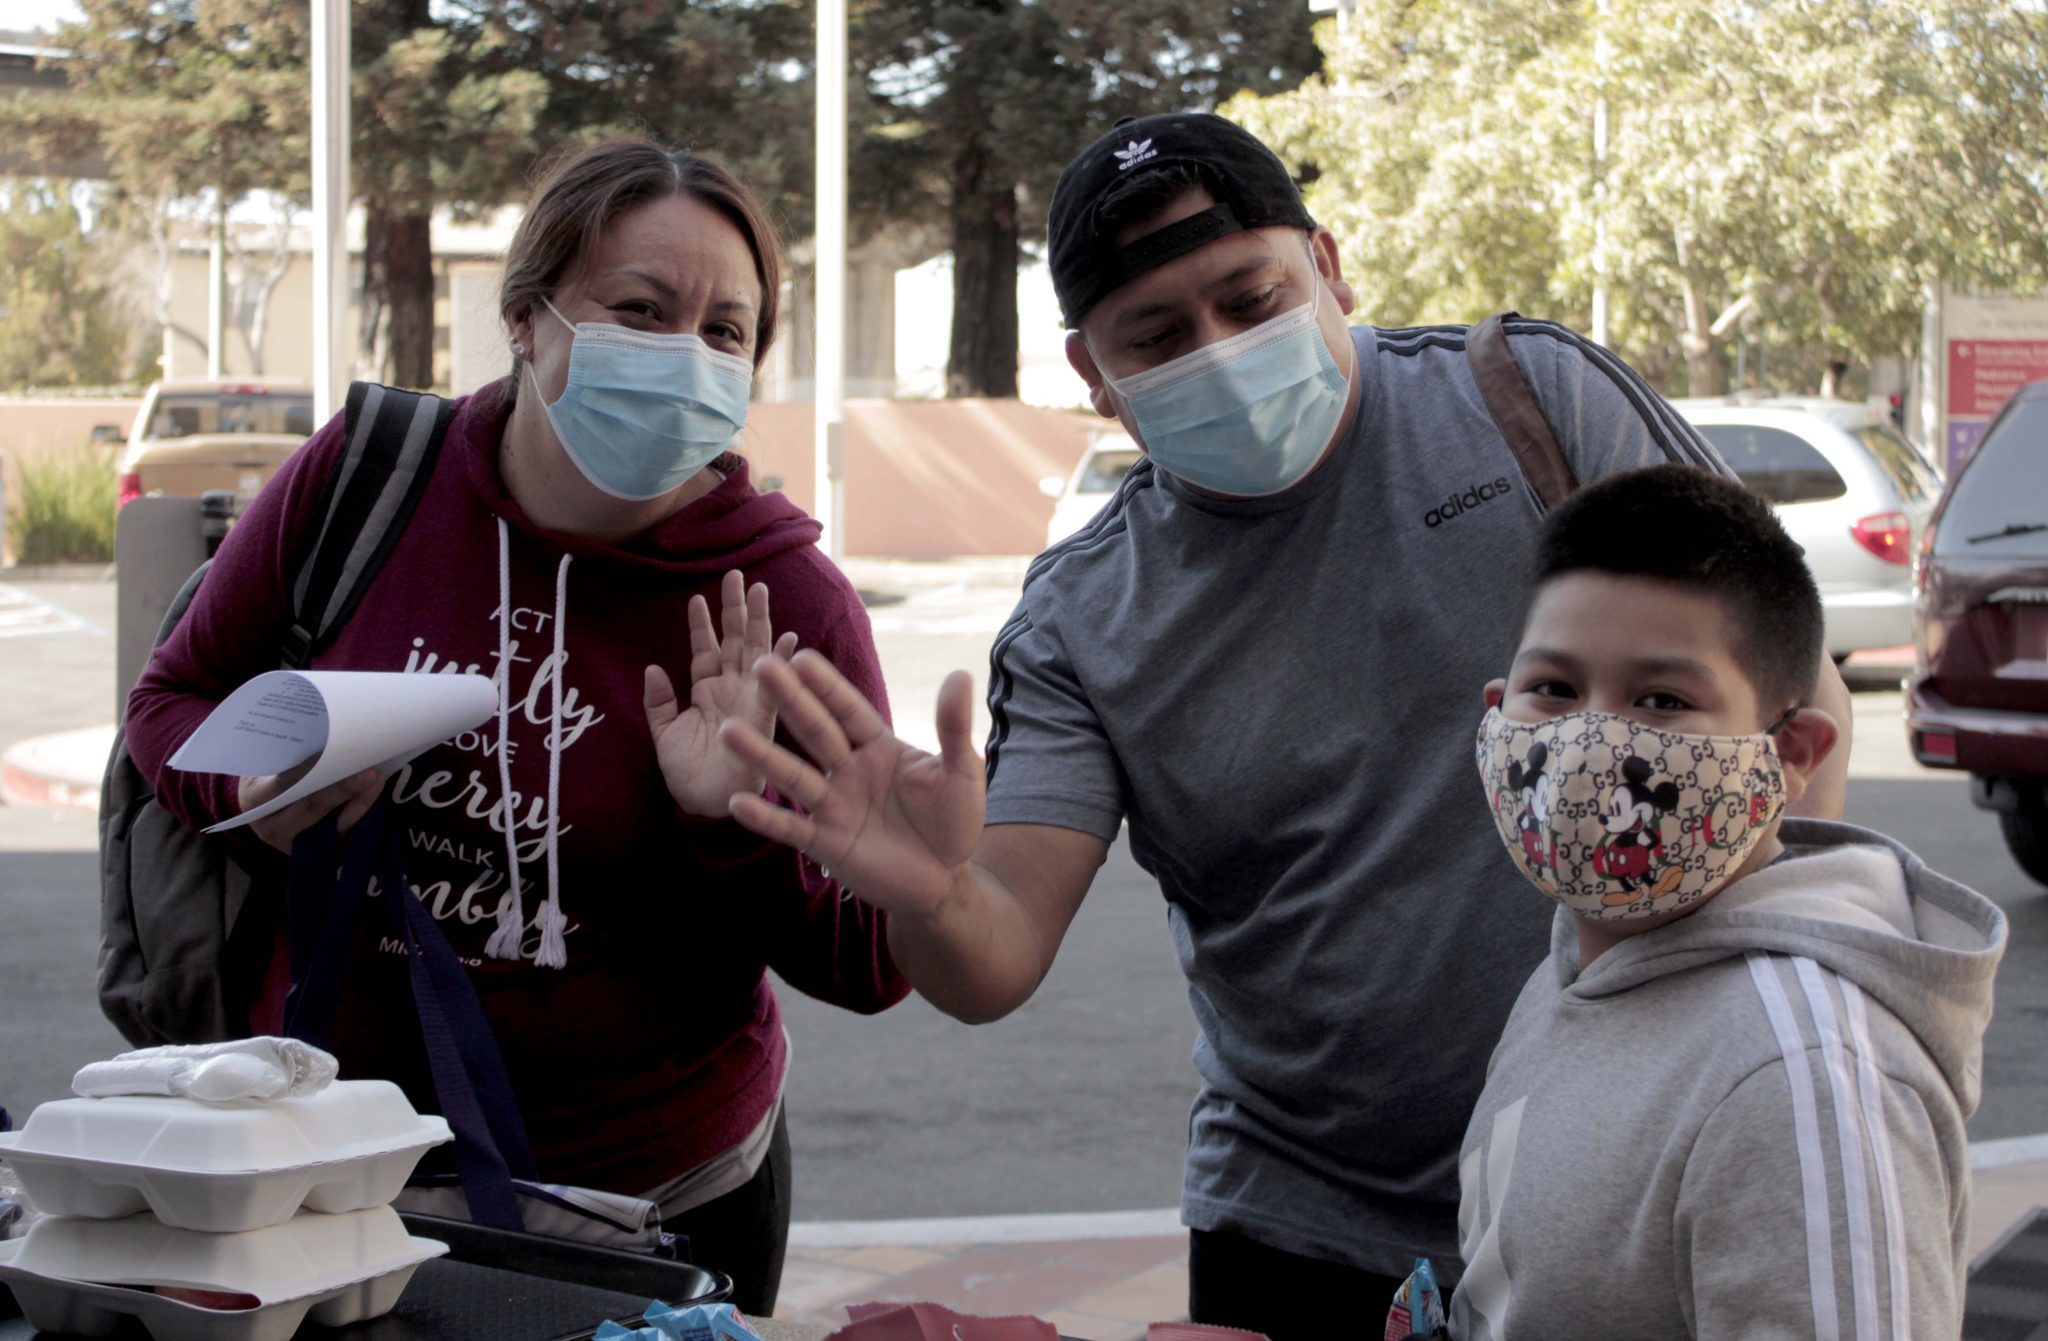 Family waving with masks on